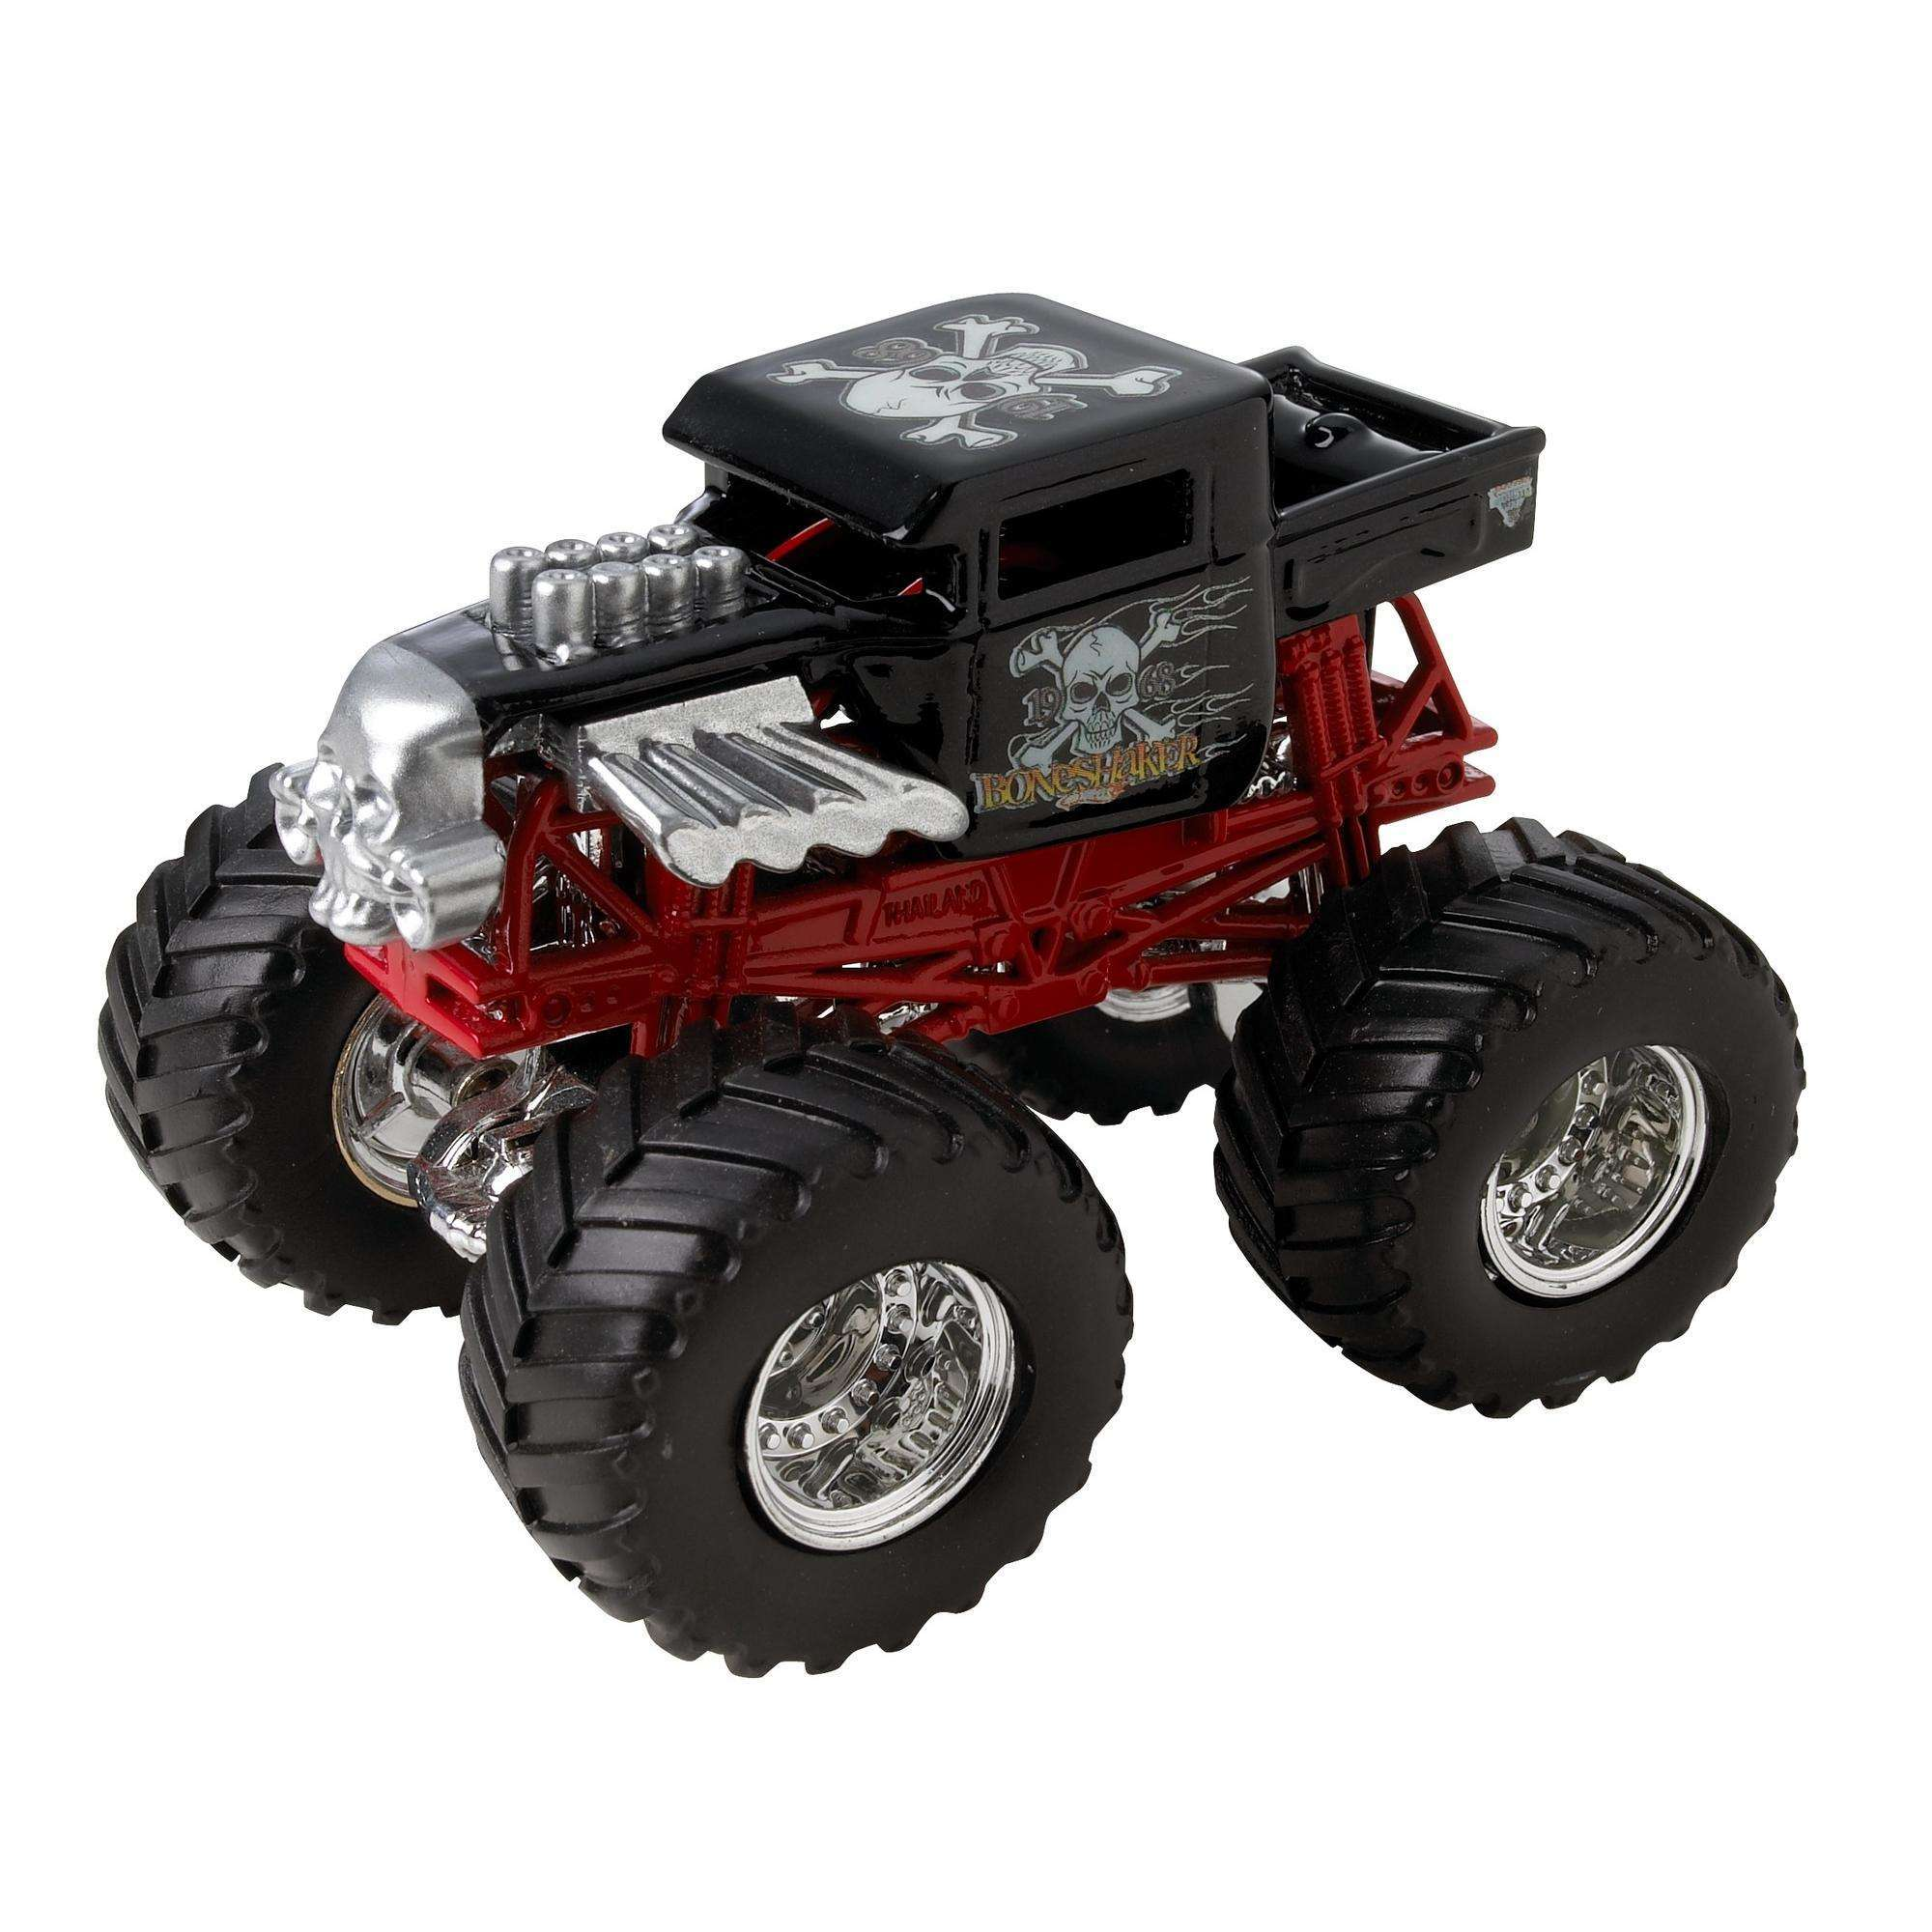 Hot Wheels Monster Jam 1:64 Scale Vehicle (Styles May Vary) by Mattel